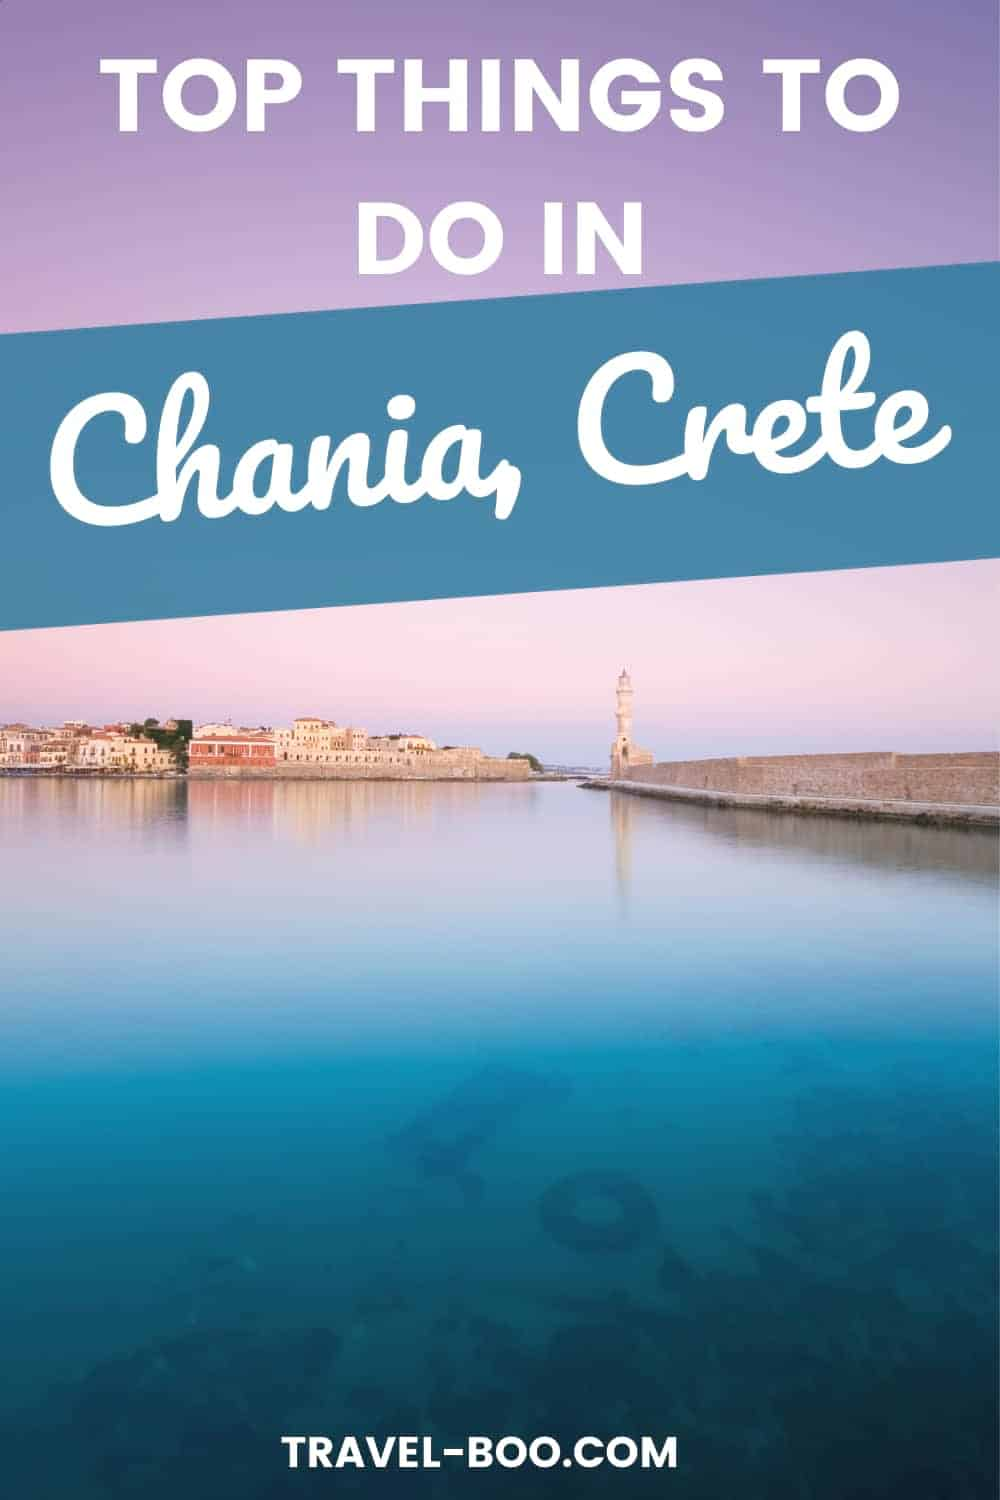 Visiting Chania Crete? Then don't miss these 14 top things to do in Chania! Greece Travel Islands, Greece Travel, Greece Travel Guide, Greece Vacation, Greece Travel Tips, Crete Greece, Chania Crete Greece, Chania, Chania Things to do. #chaniagreece #greecetravelislands #greecetravel